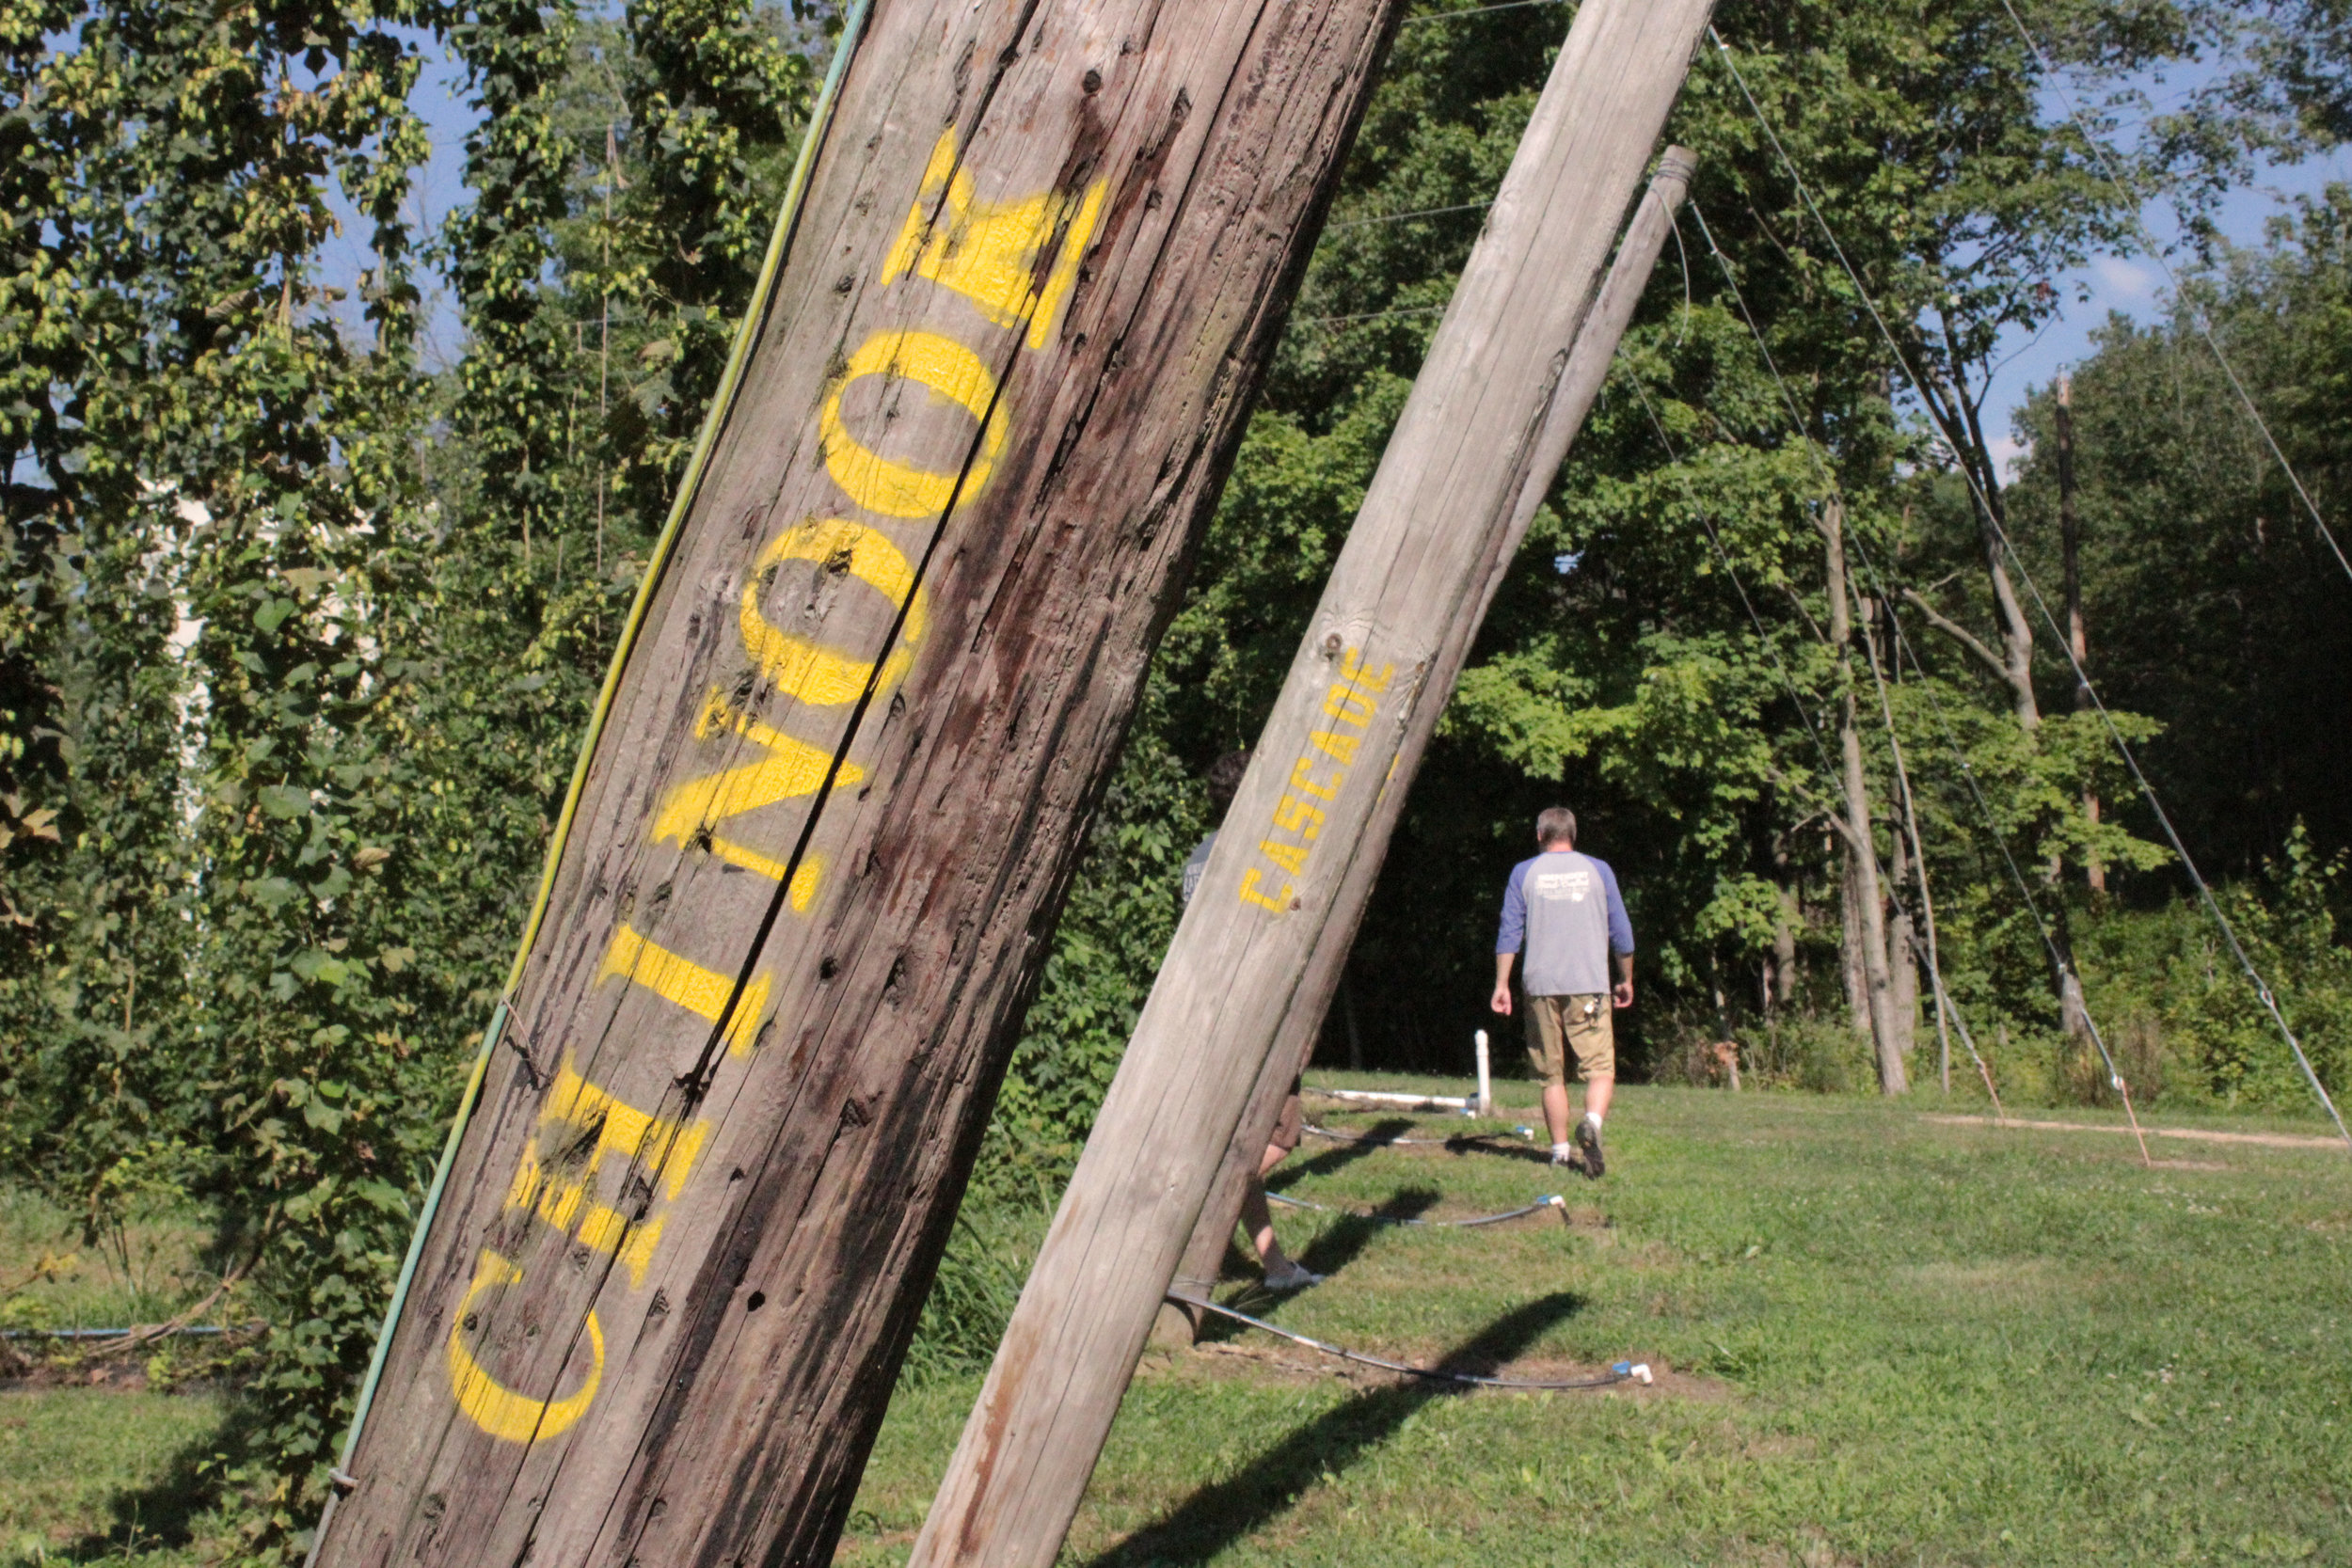 chinook pole hop yard.jpg